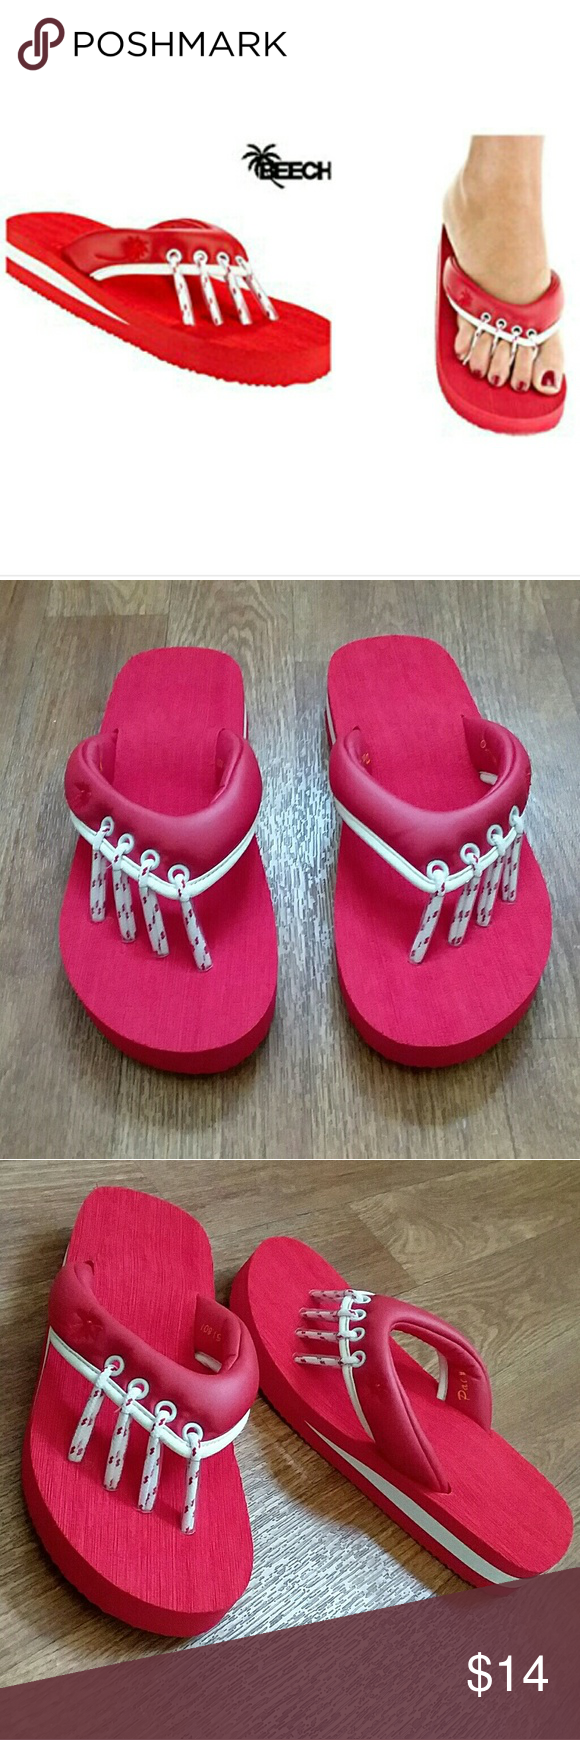 4c1d73bfe NWT - Beech Red Yoga   Pedicure Sandals - Size S NWT - Beech Red Yoga and Pedicure  Sandals in Size Small. New in bag. Beech Shoes Sandals